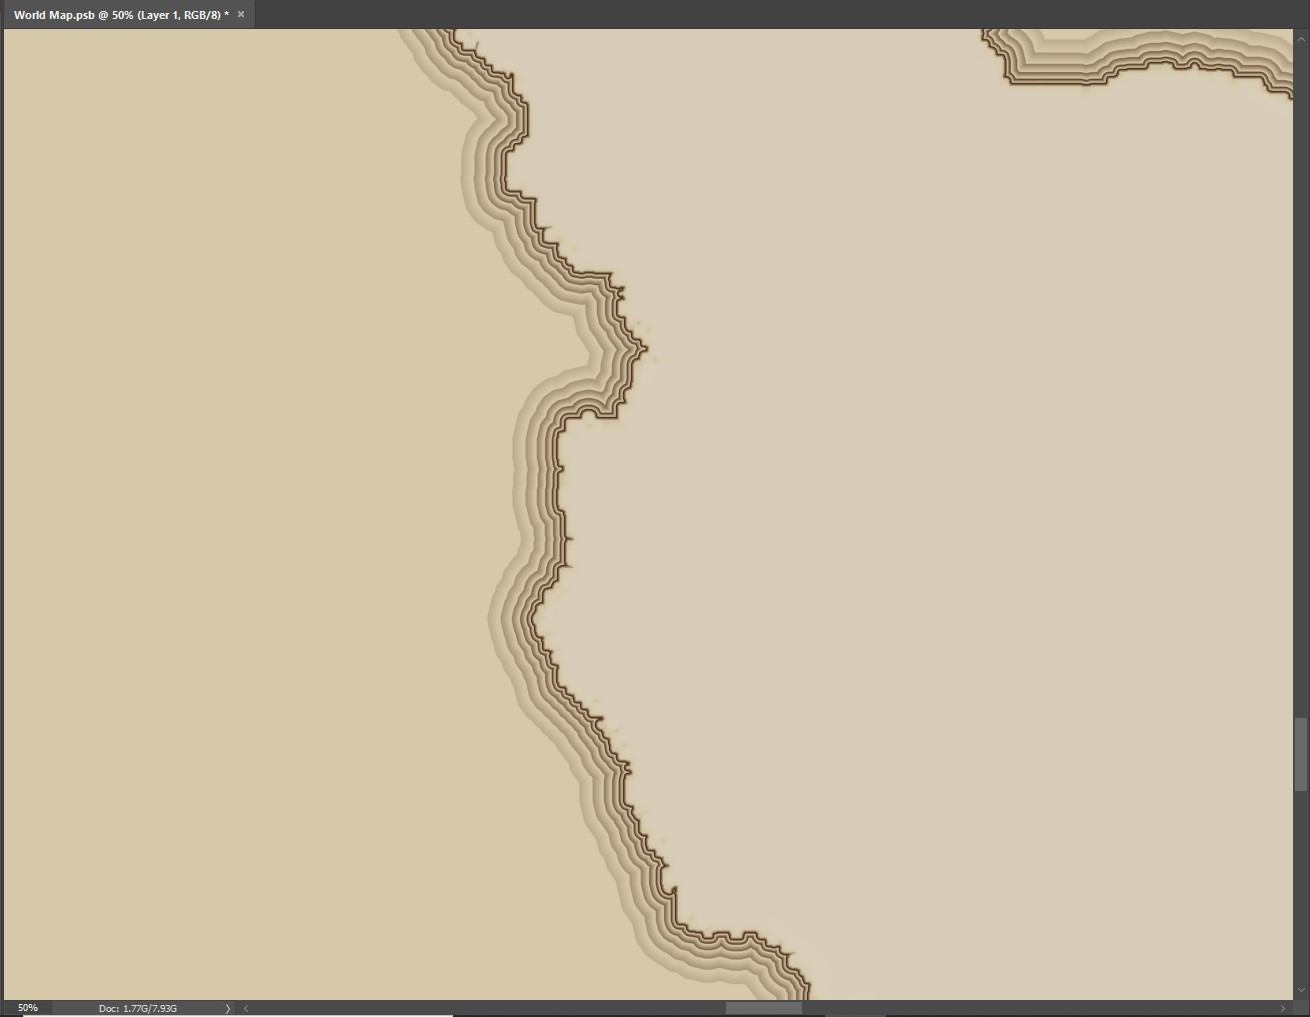 Some contoured edges make the land much more distinct